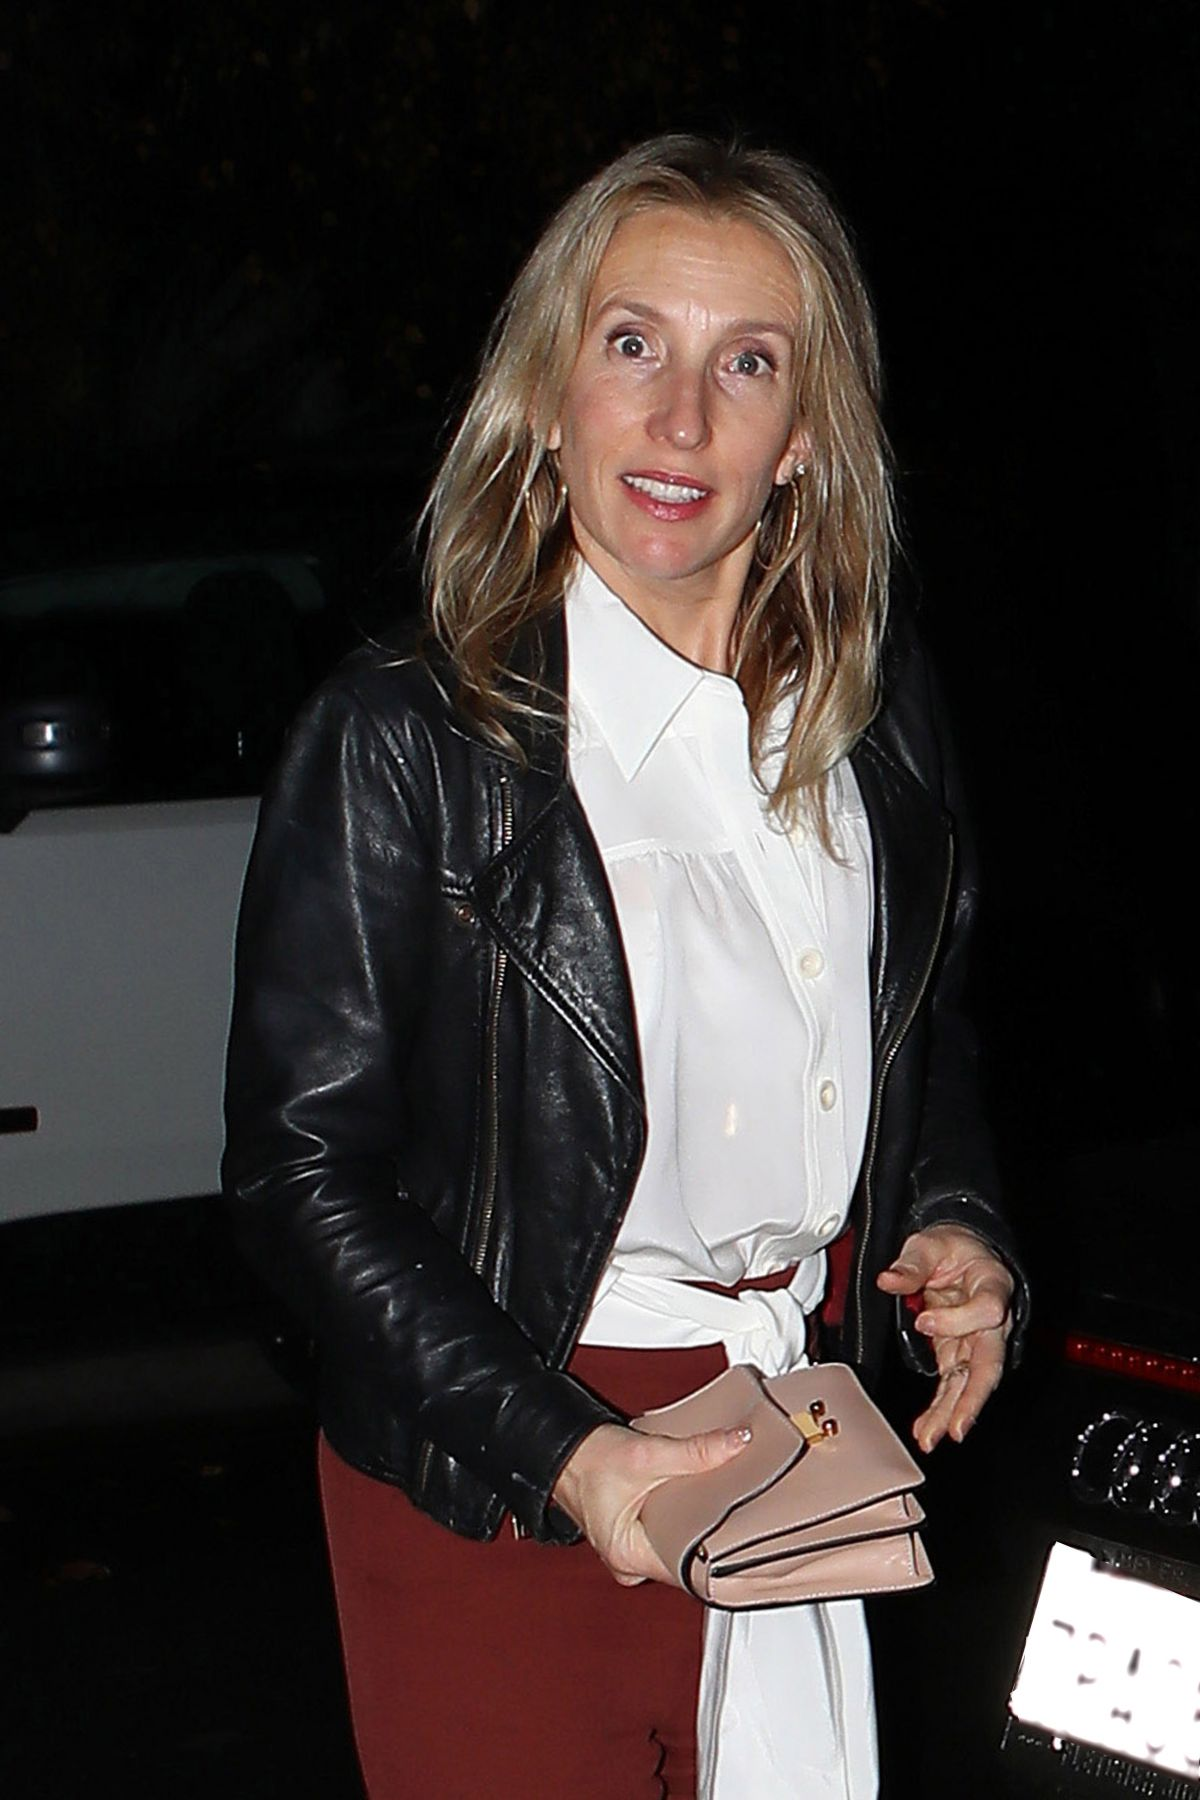 SAM TAYLOR-JOHNSON at Bradley Cooper's Birthday Bash in Los Angeles 01/05/2017